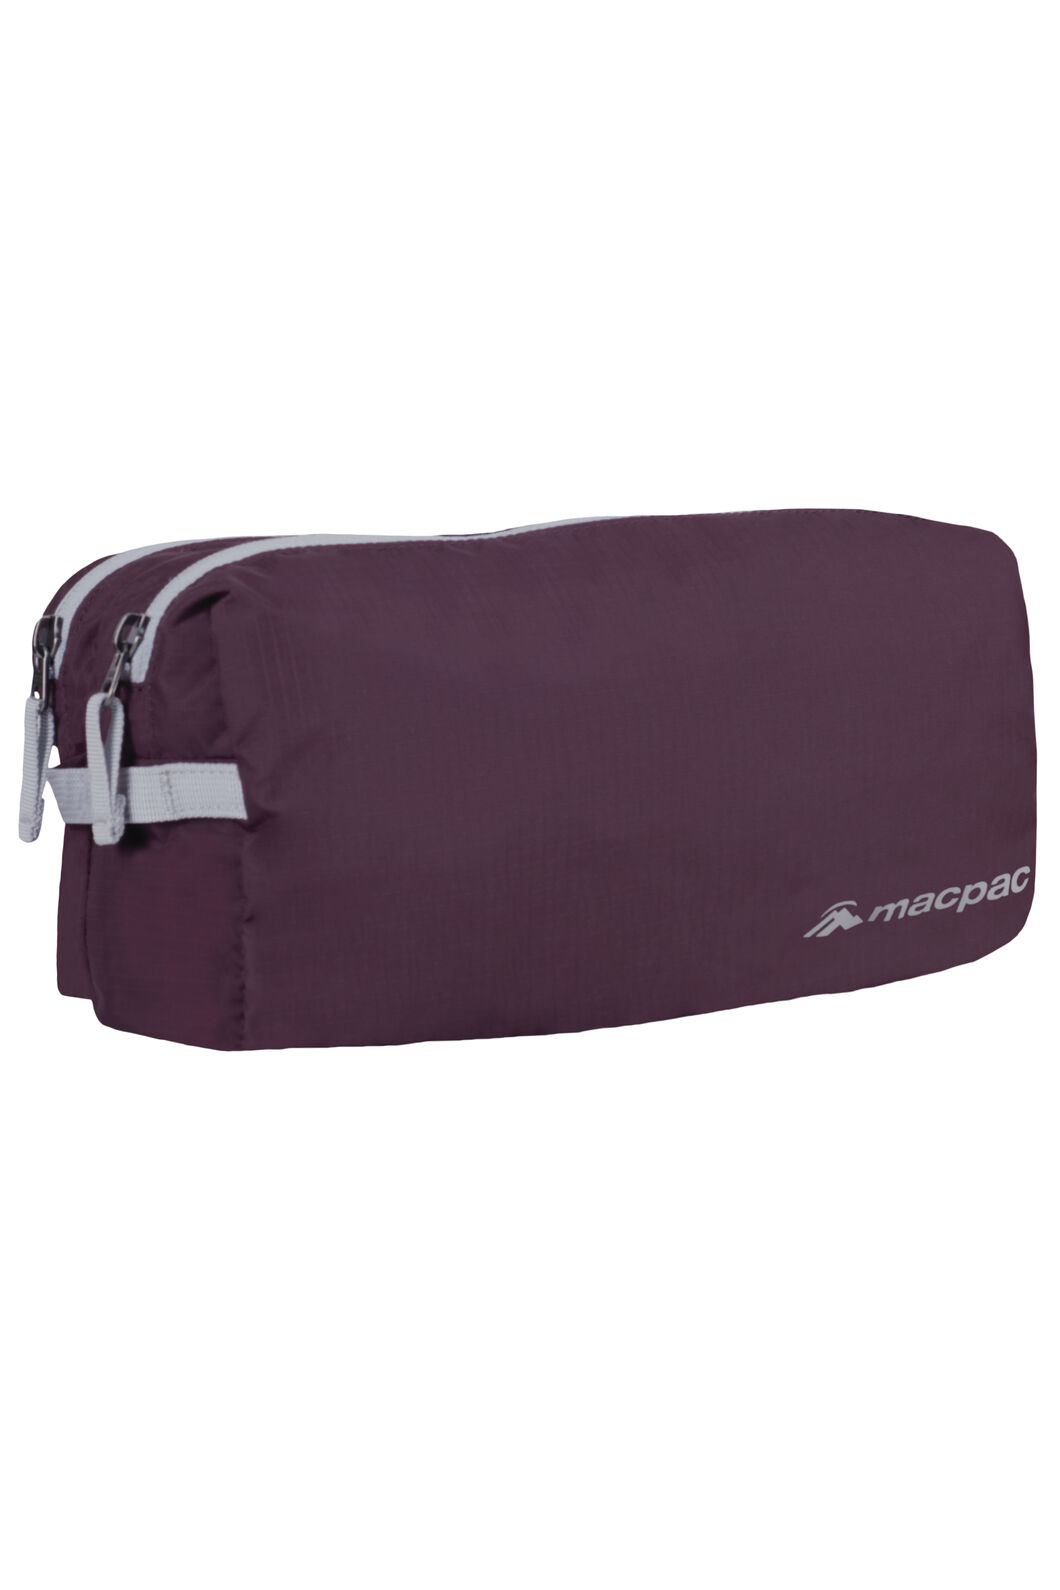 Macpac Double or Nothing Washbag, Winetasting, hi-res